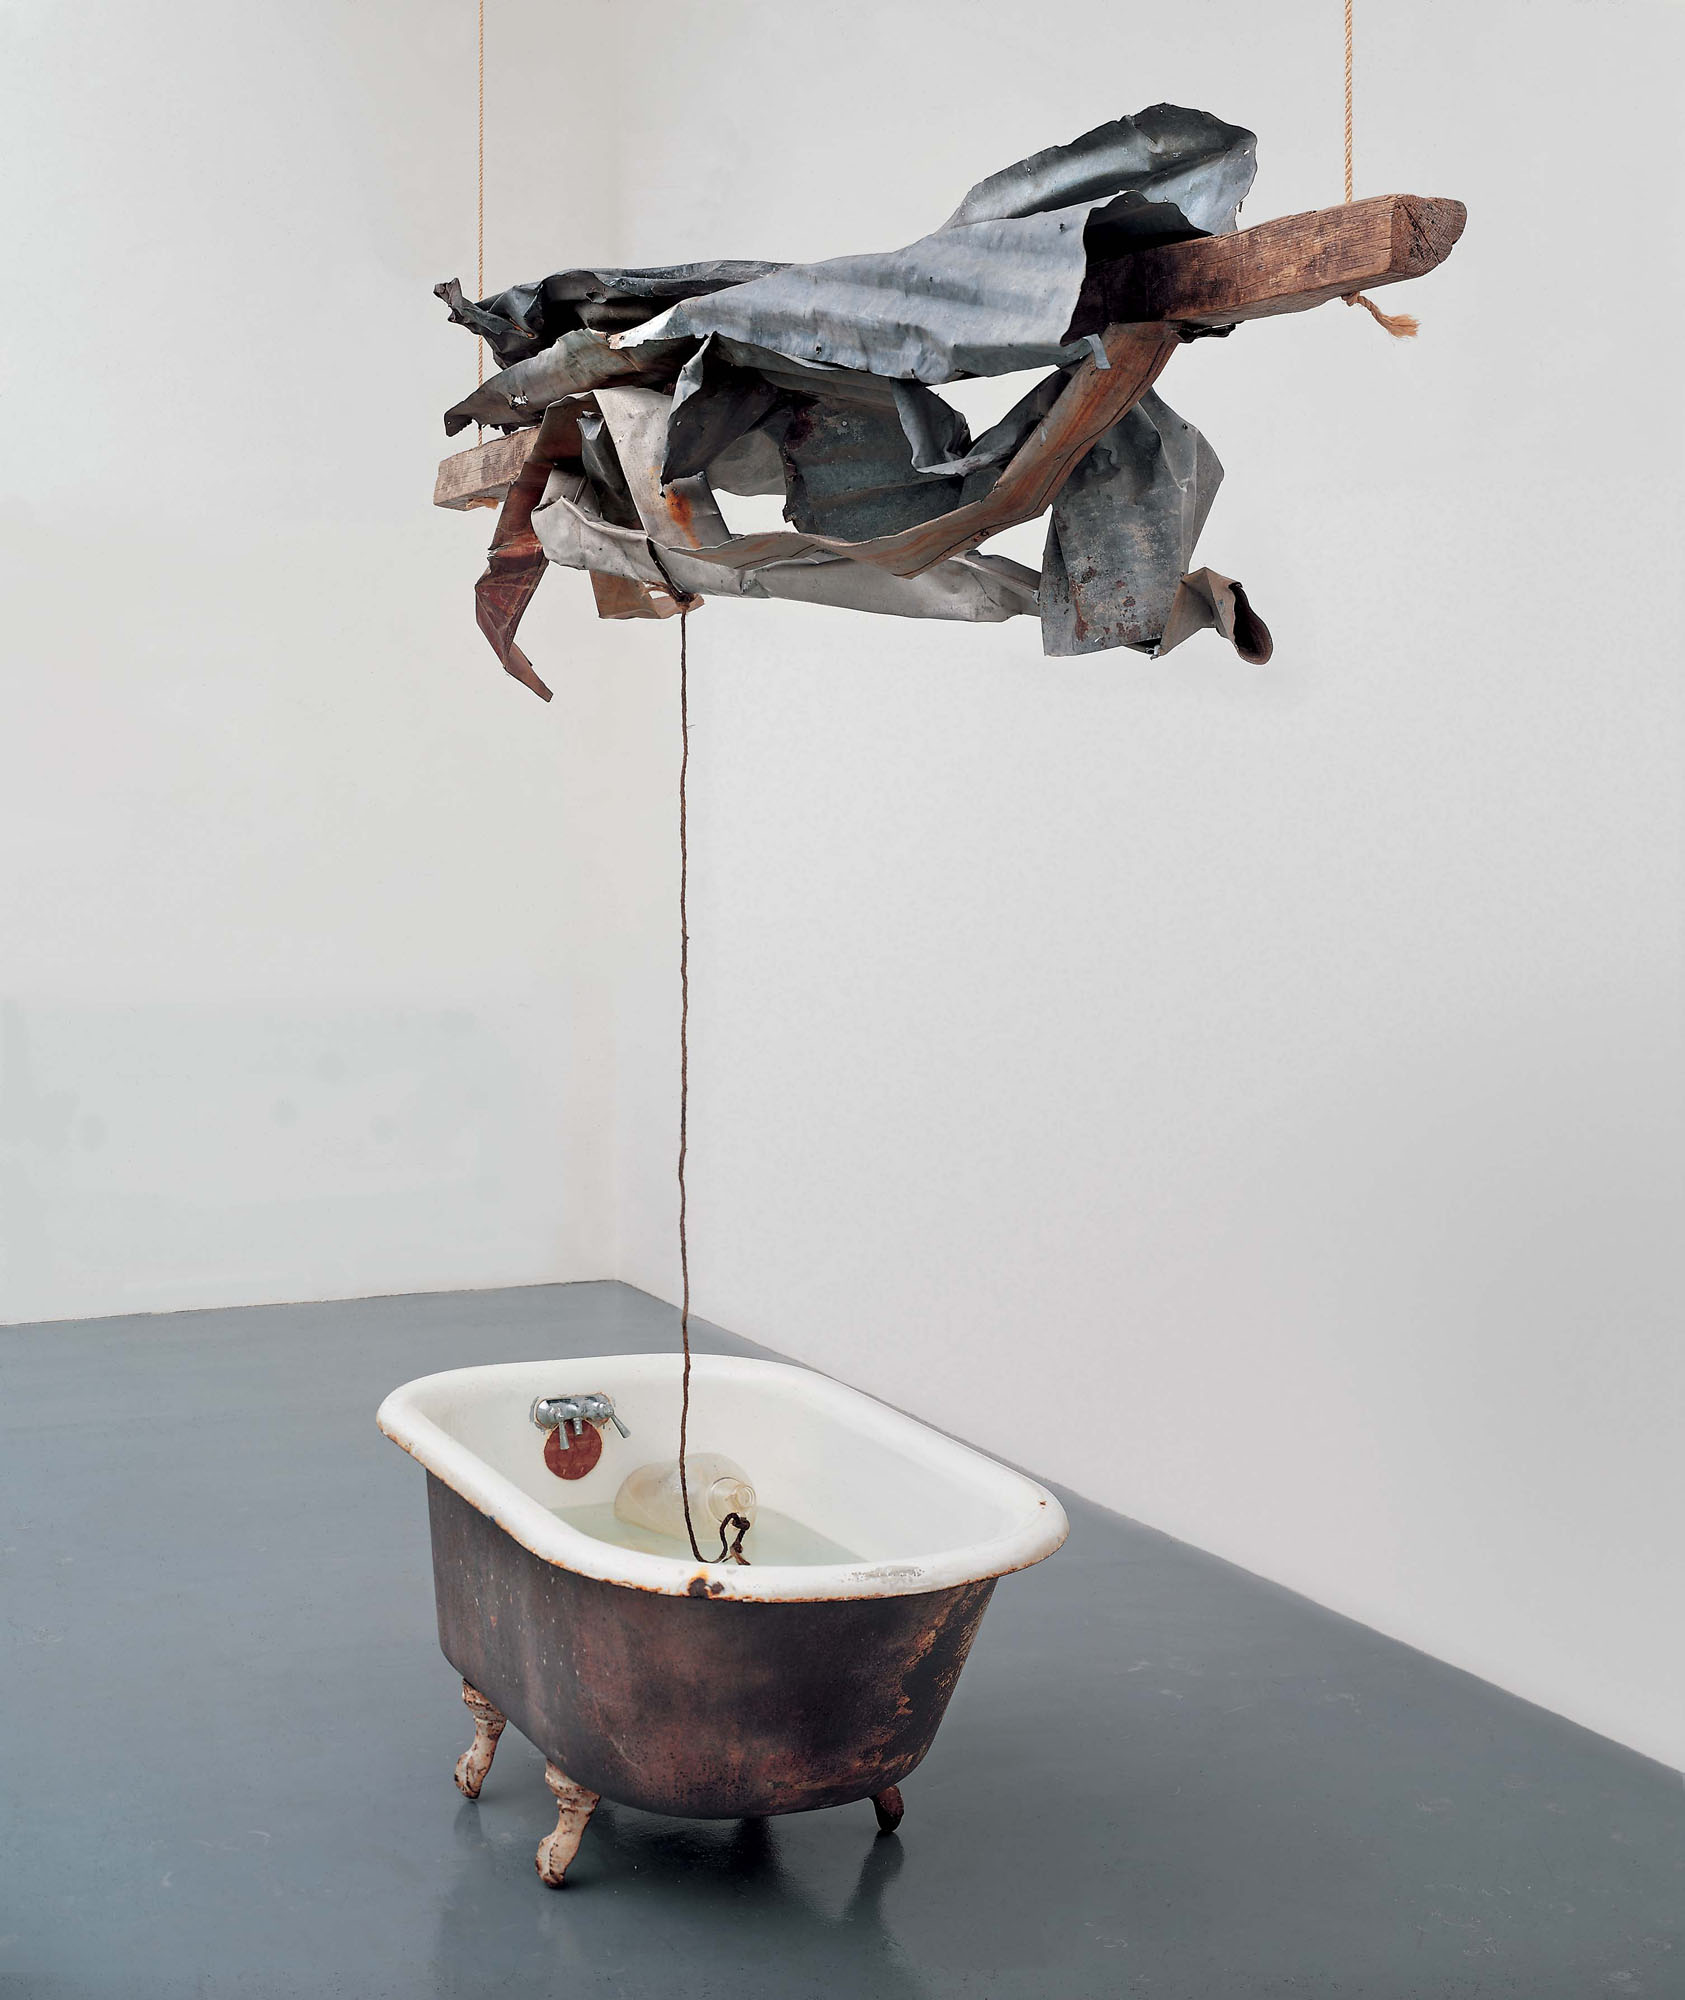 © Rauschenberg Foundation Sor Aqua (Venetian) 1973. Water-filled bathtub, wood, metal, rope, and glass jug, 98 x 120 x 41 inches (248.9 x 304.8 x 104.1 cm), The Museum of Fine Arts, Houston